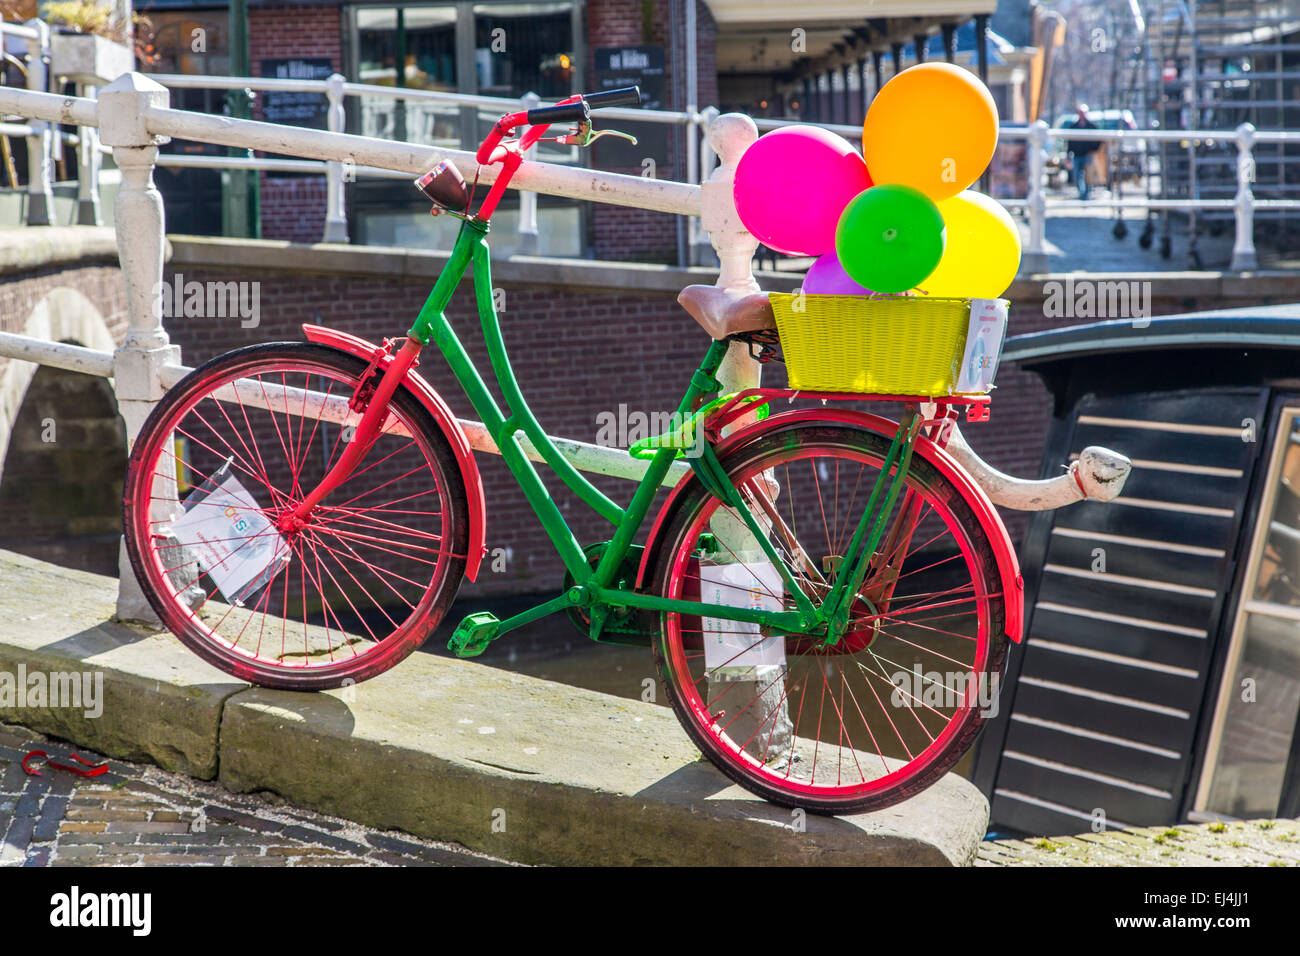 Historic city of Alkmaar, North Holland, Netherlands, dutch bike, colorful, with balloons, - Stock Image